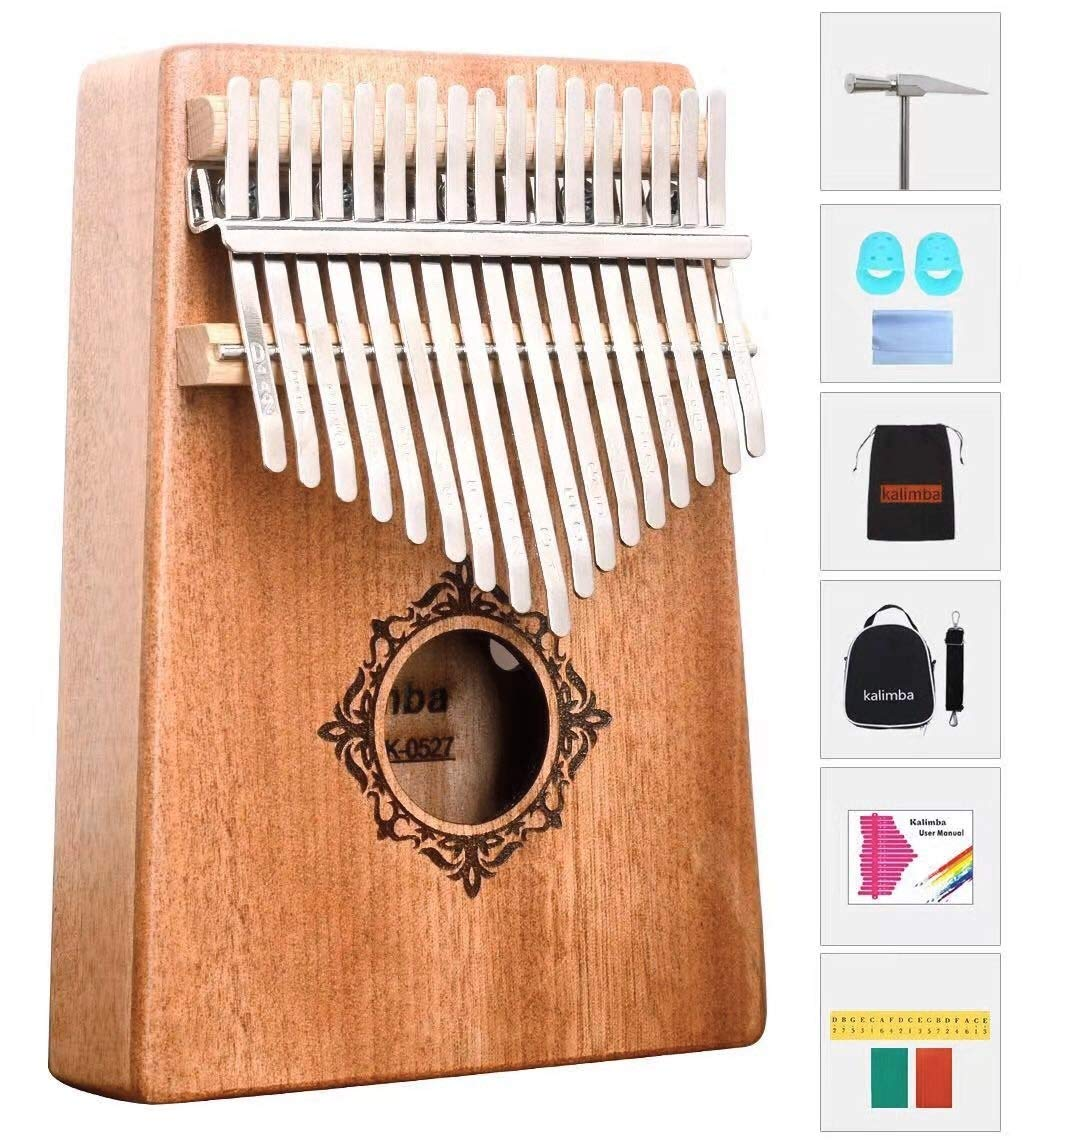 RMK Kalimba 17 Keys Thumb Piano Finger Piano Hand Piano Solid Mahogany Wood Body with Tune Hammer Finger Sleeve Cloth, two bags,English Manual,Tune Stickers and Color Stickers